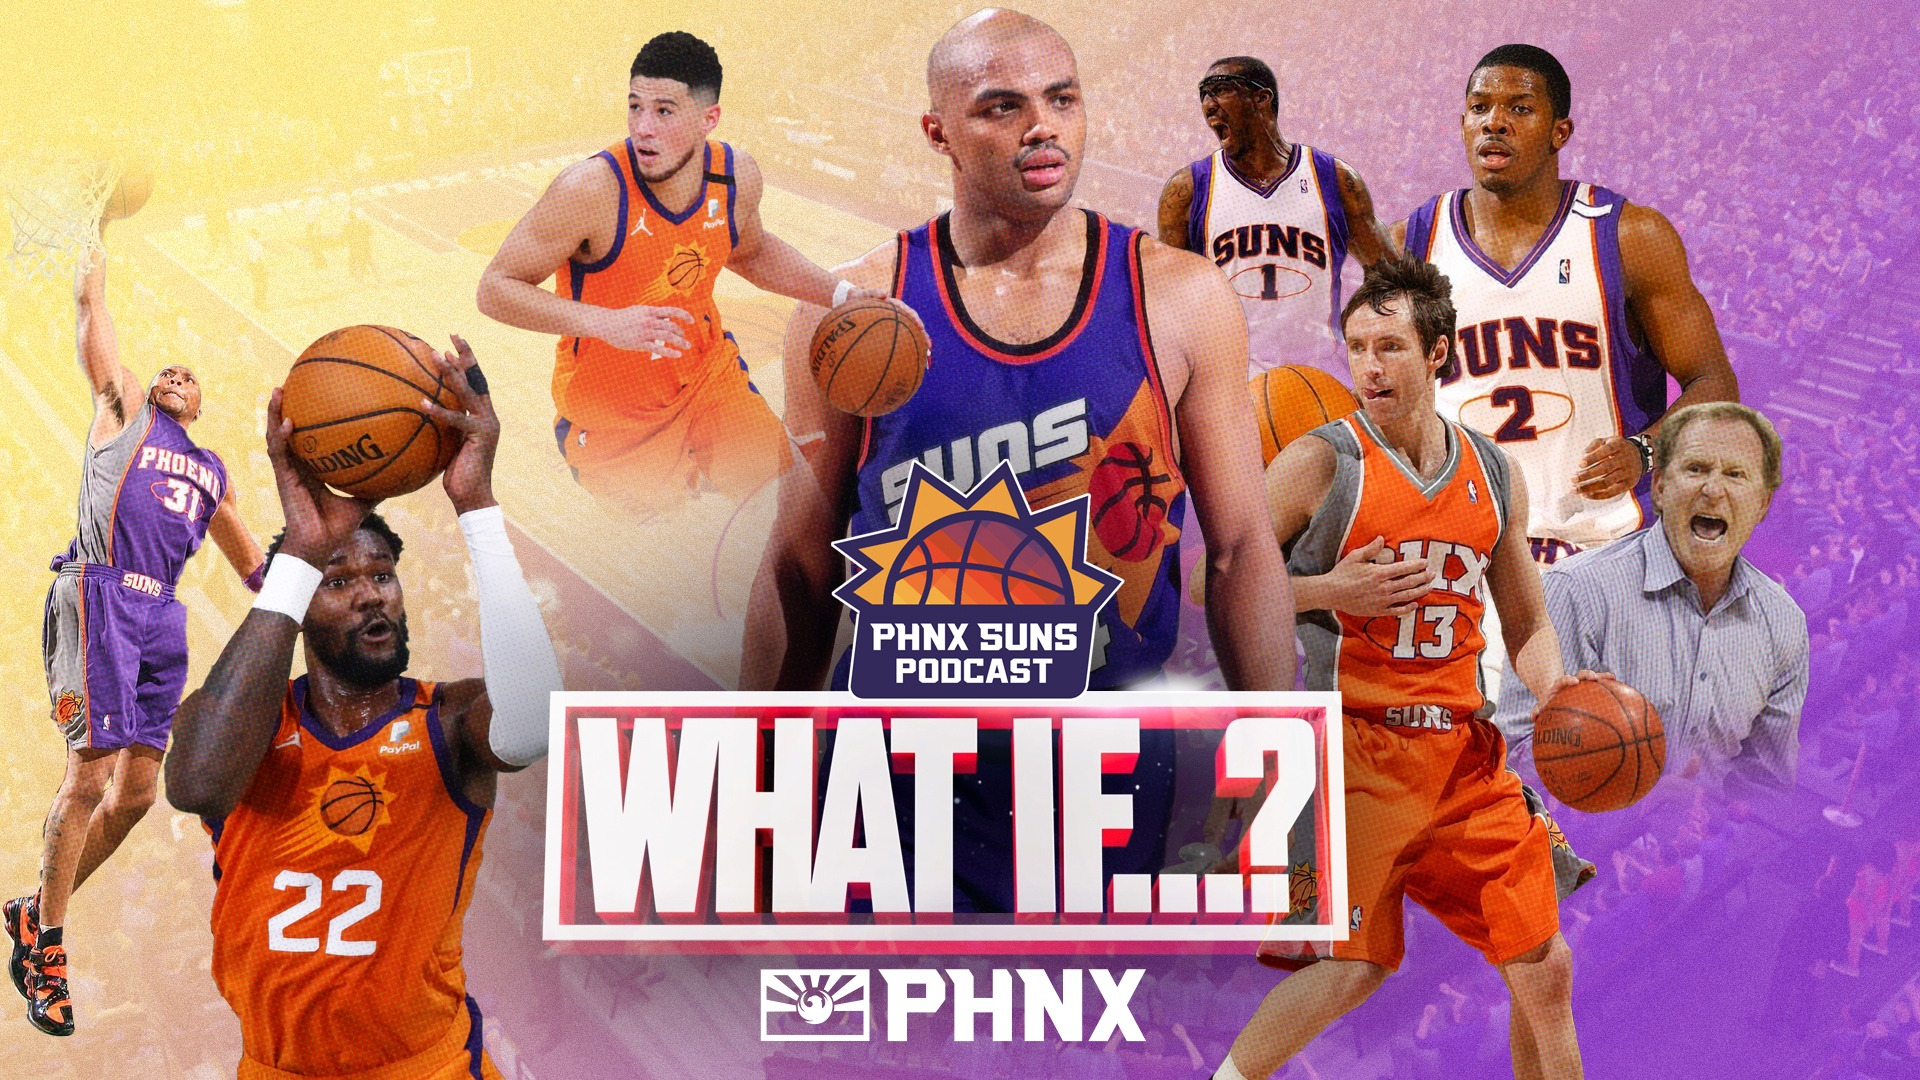 What if John Paxson had missed in Game 6 of the 1993 NBA Finals?